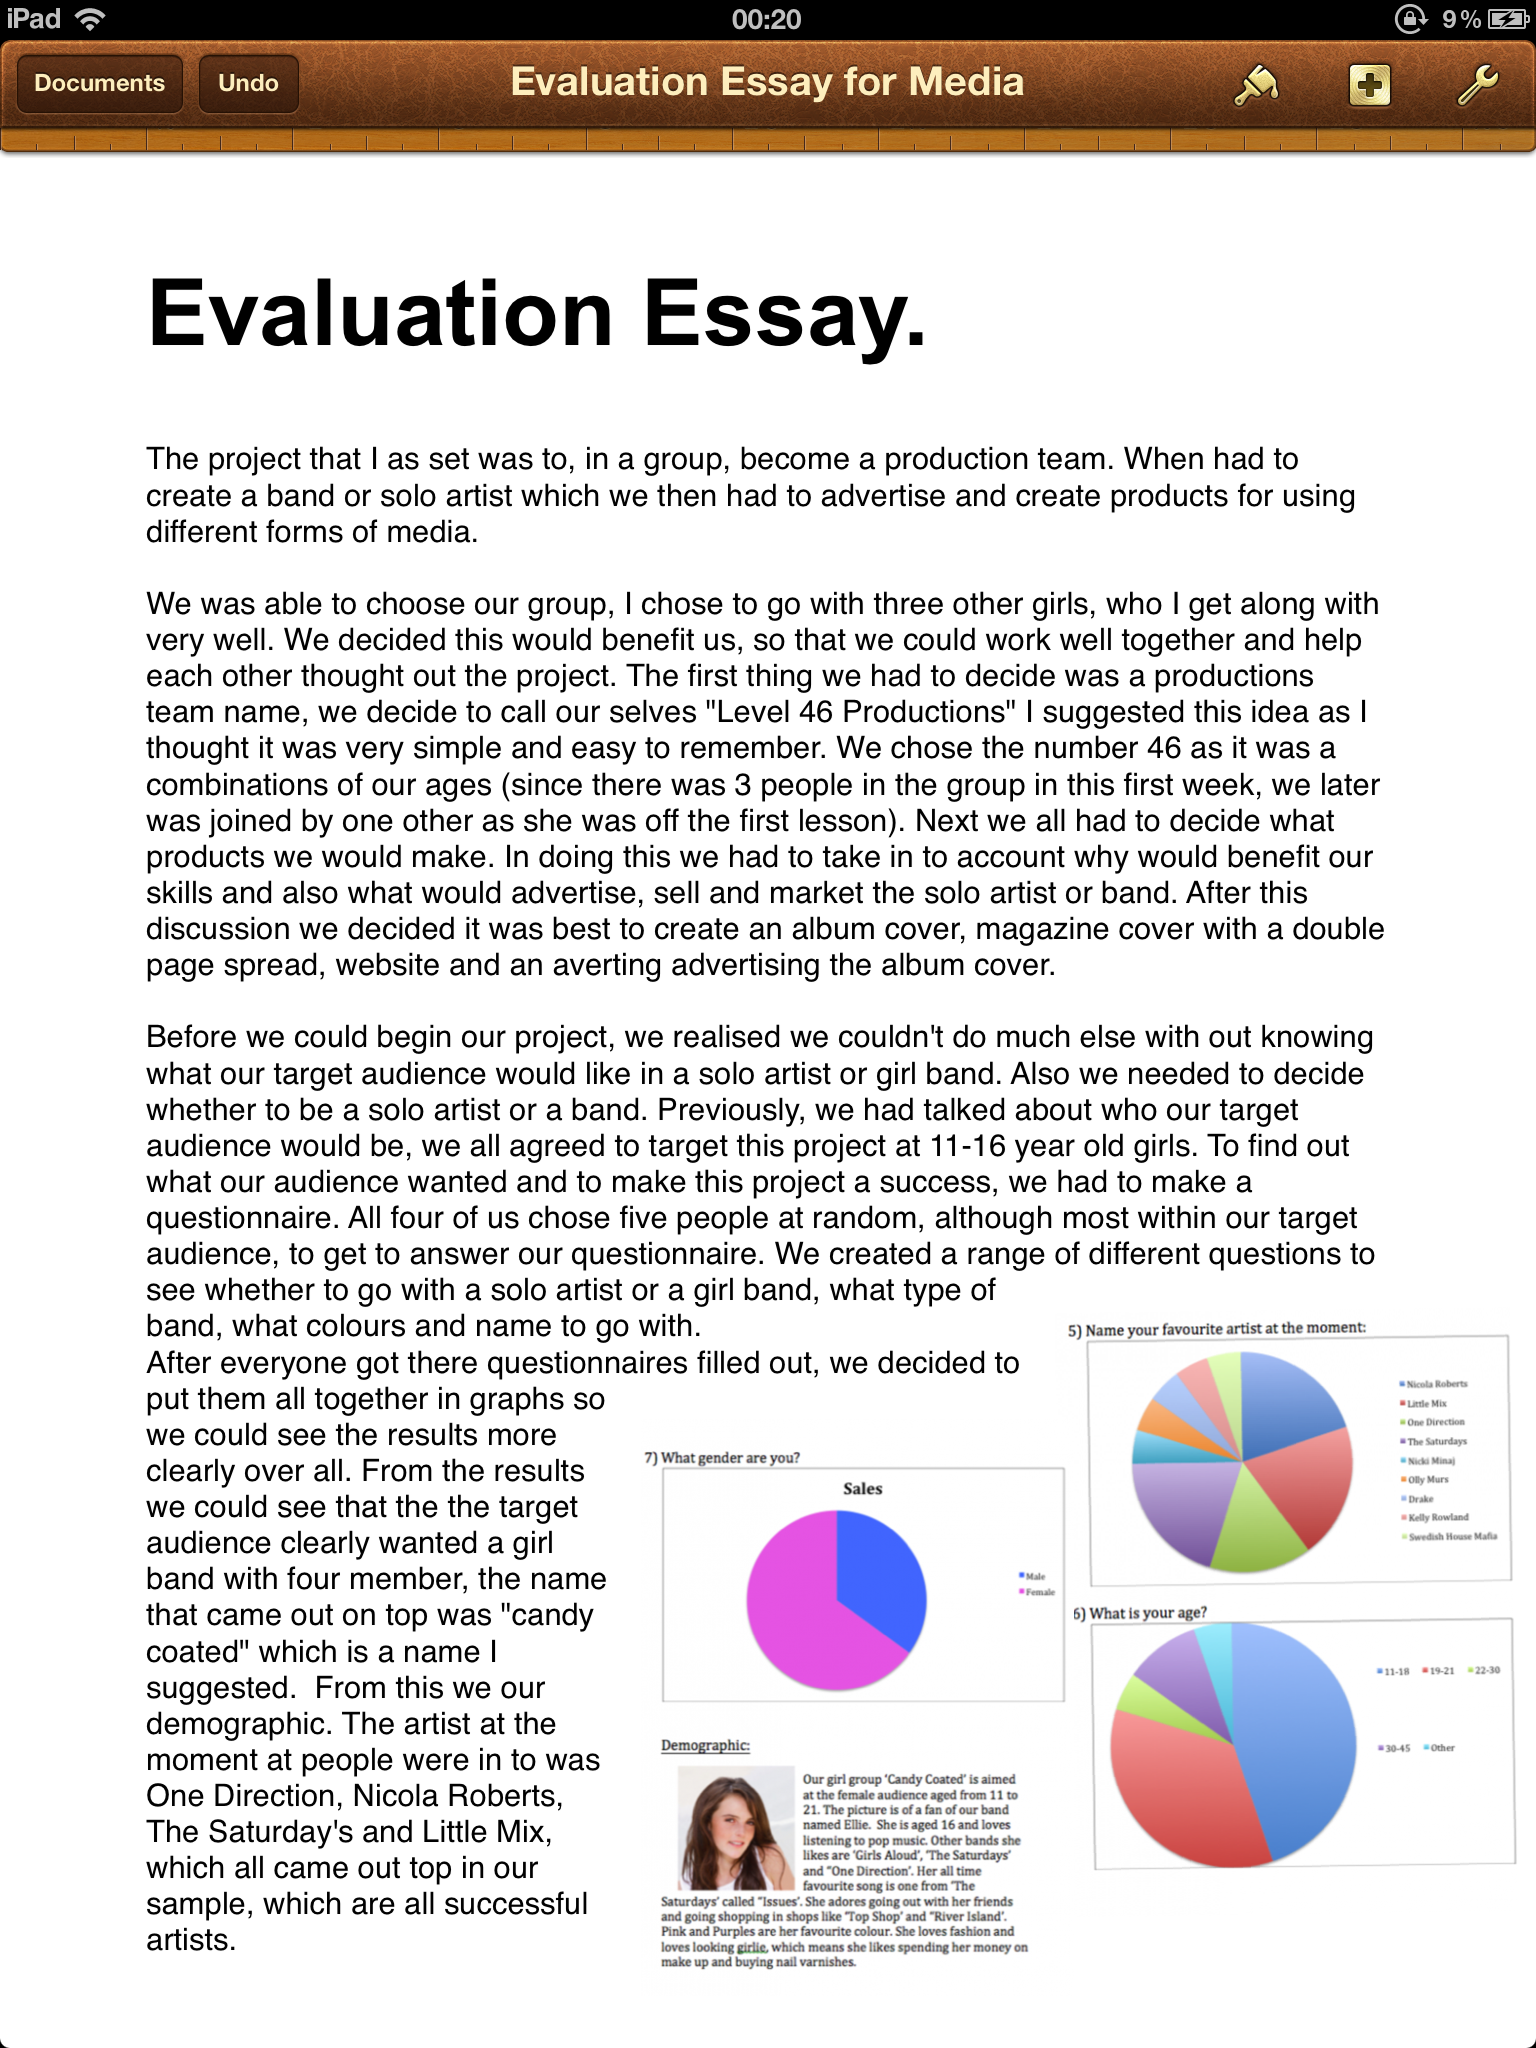 015 How To Write An Evaluation Essay Pg Outstanding Sample On A Movie Restaurant Full